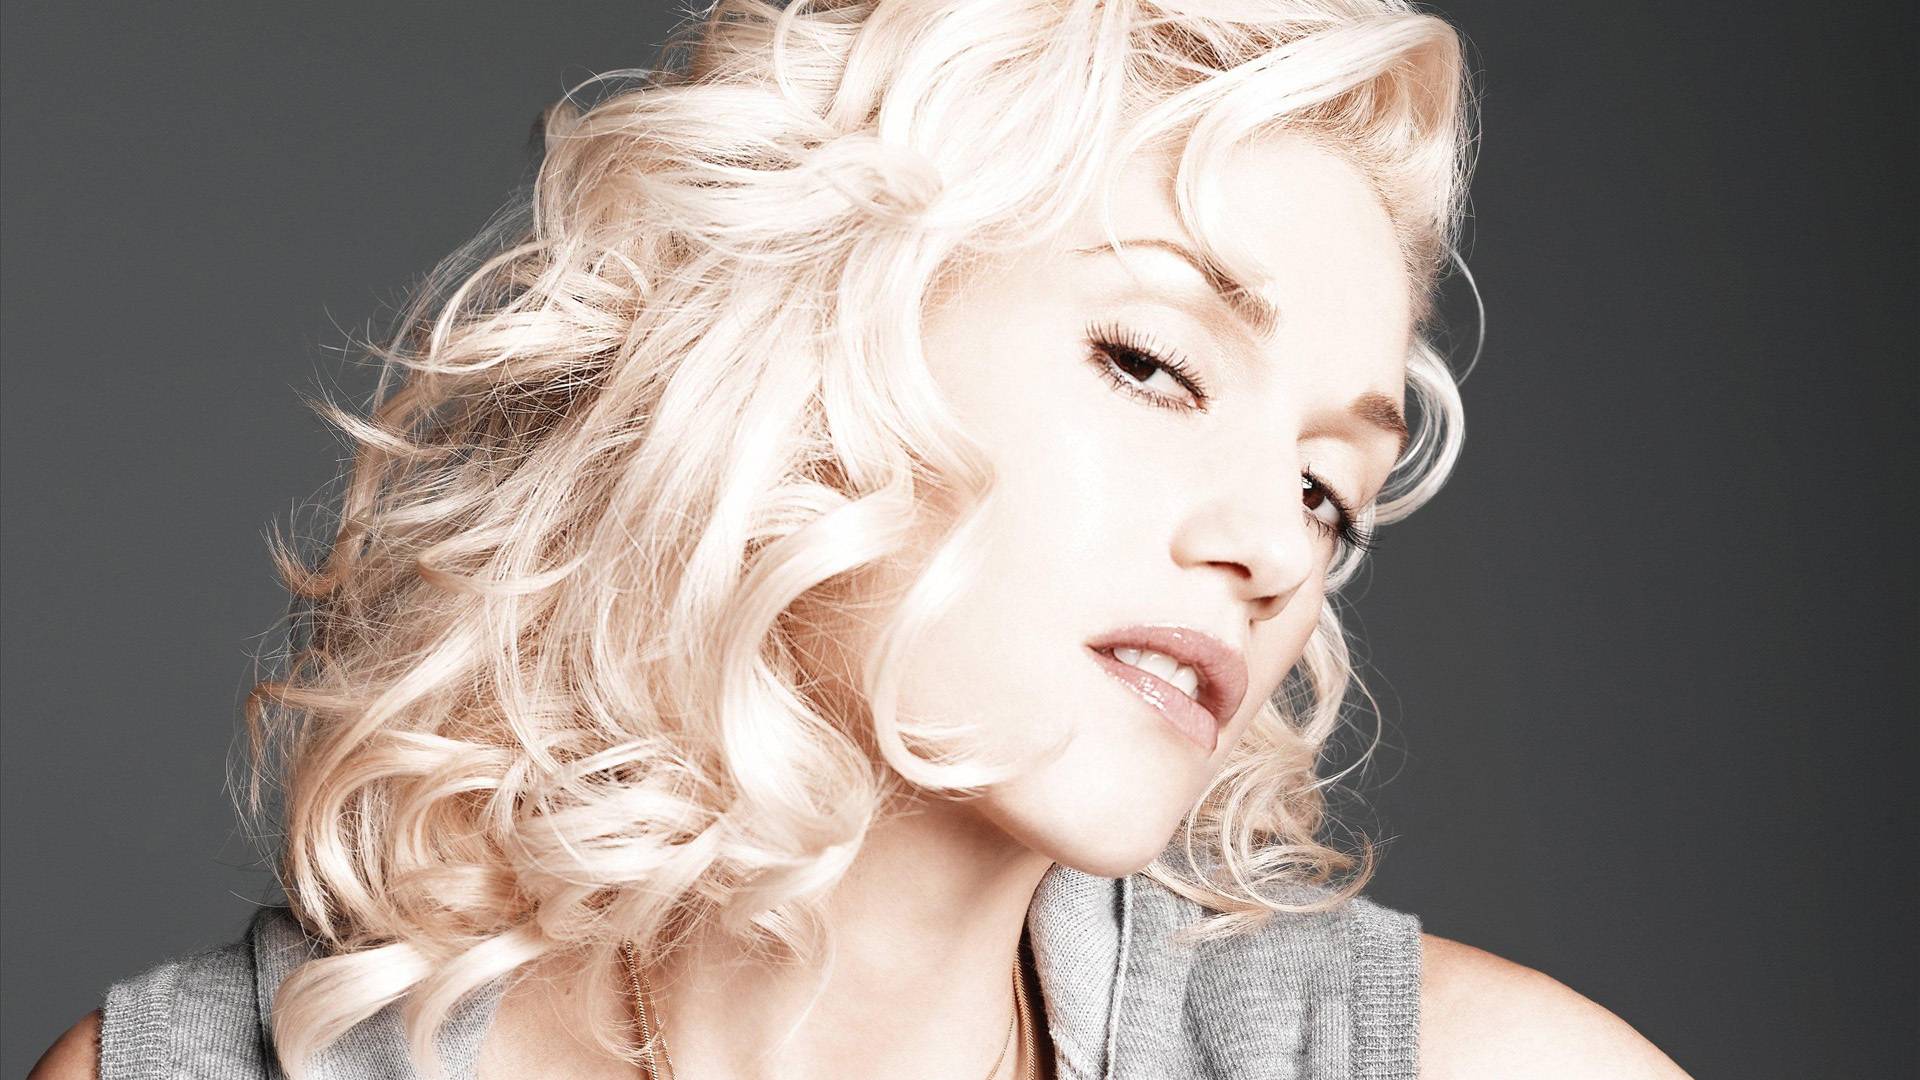 gwen stefani wallpaper cool - photo #11